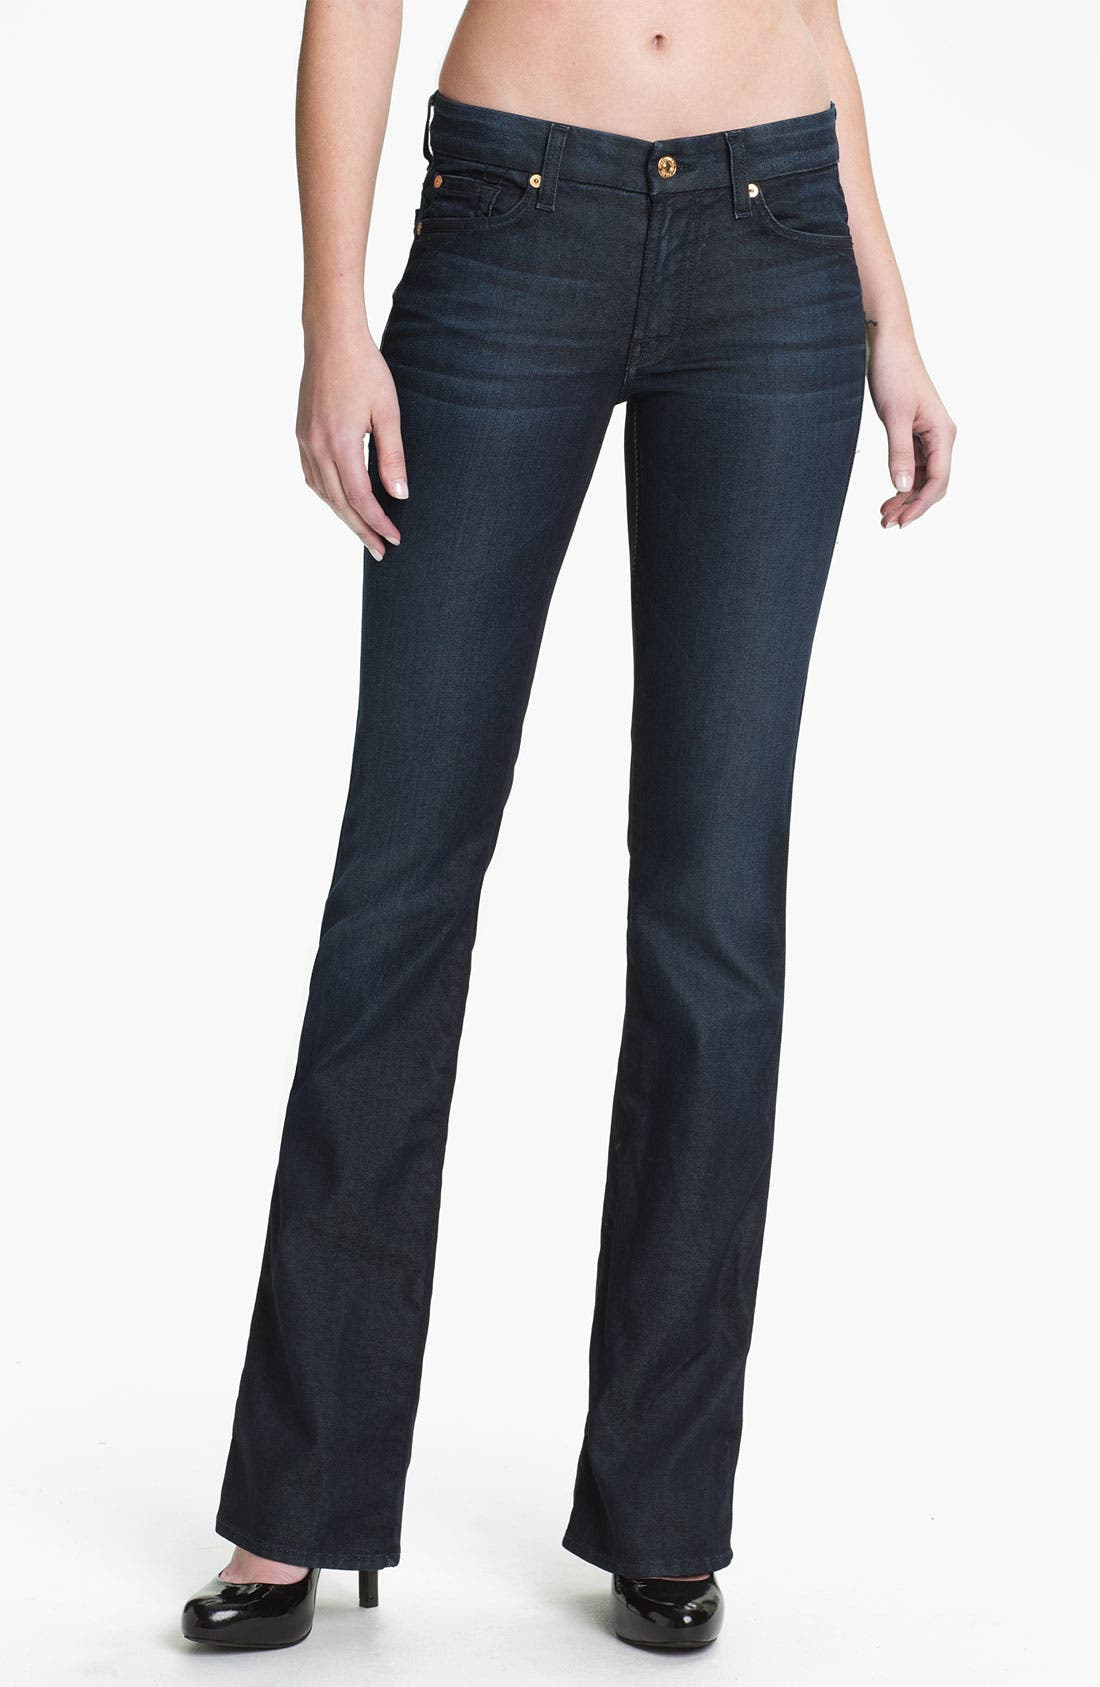 Alternate Image 1 Selected - 7 For All Mankind® 'Kimmie' Bootcut Jeans (Reflective Night Star)